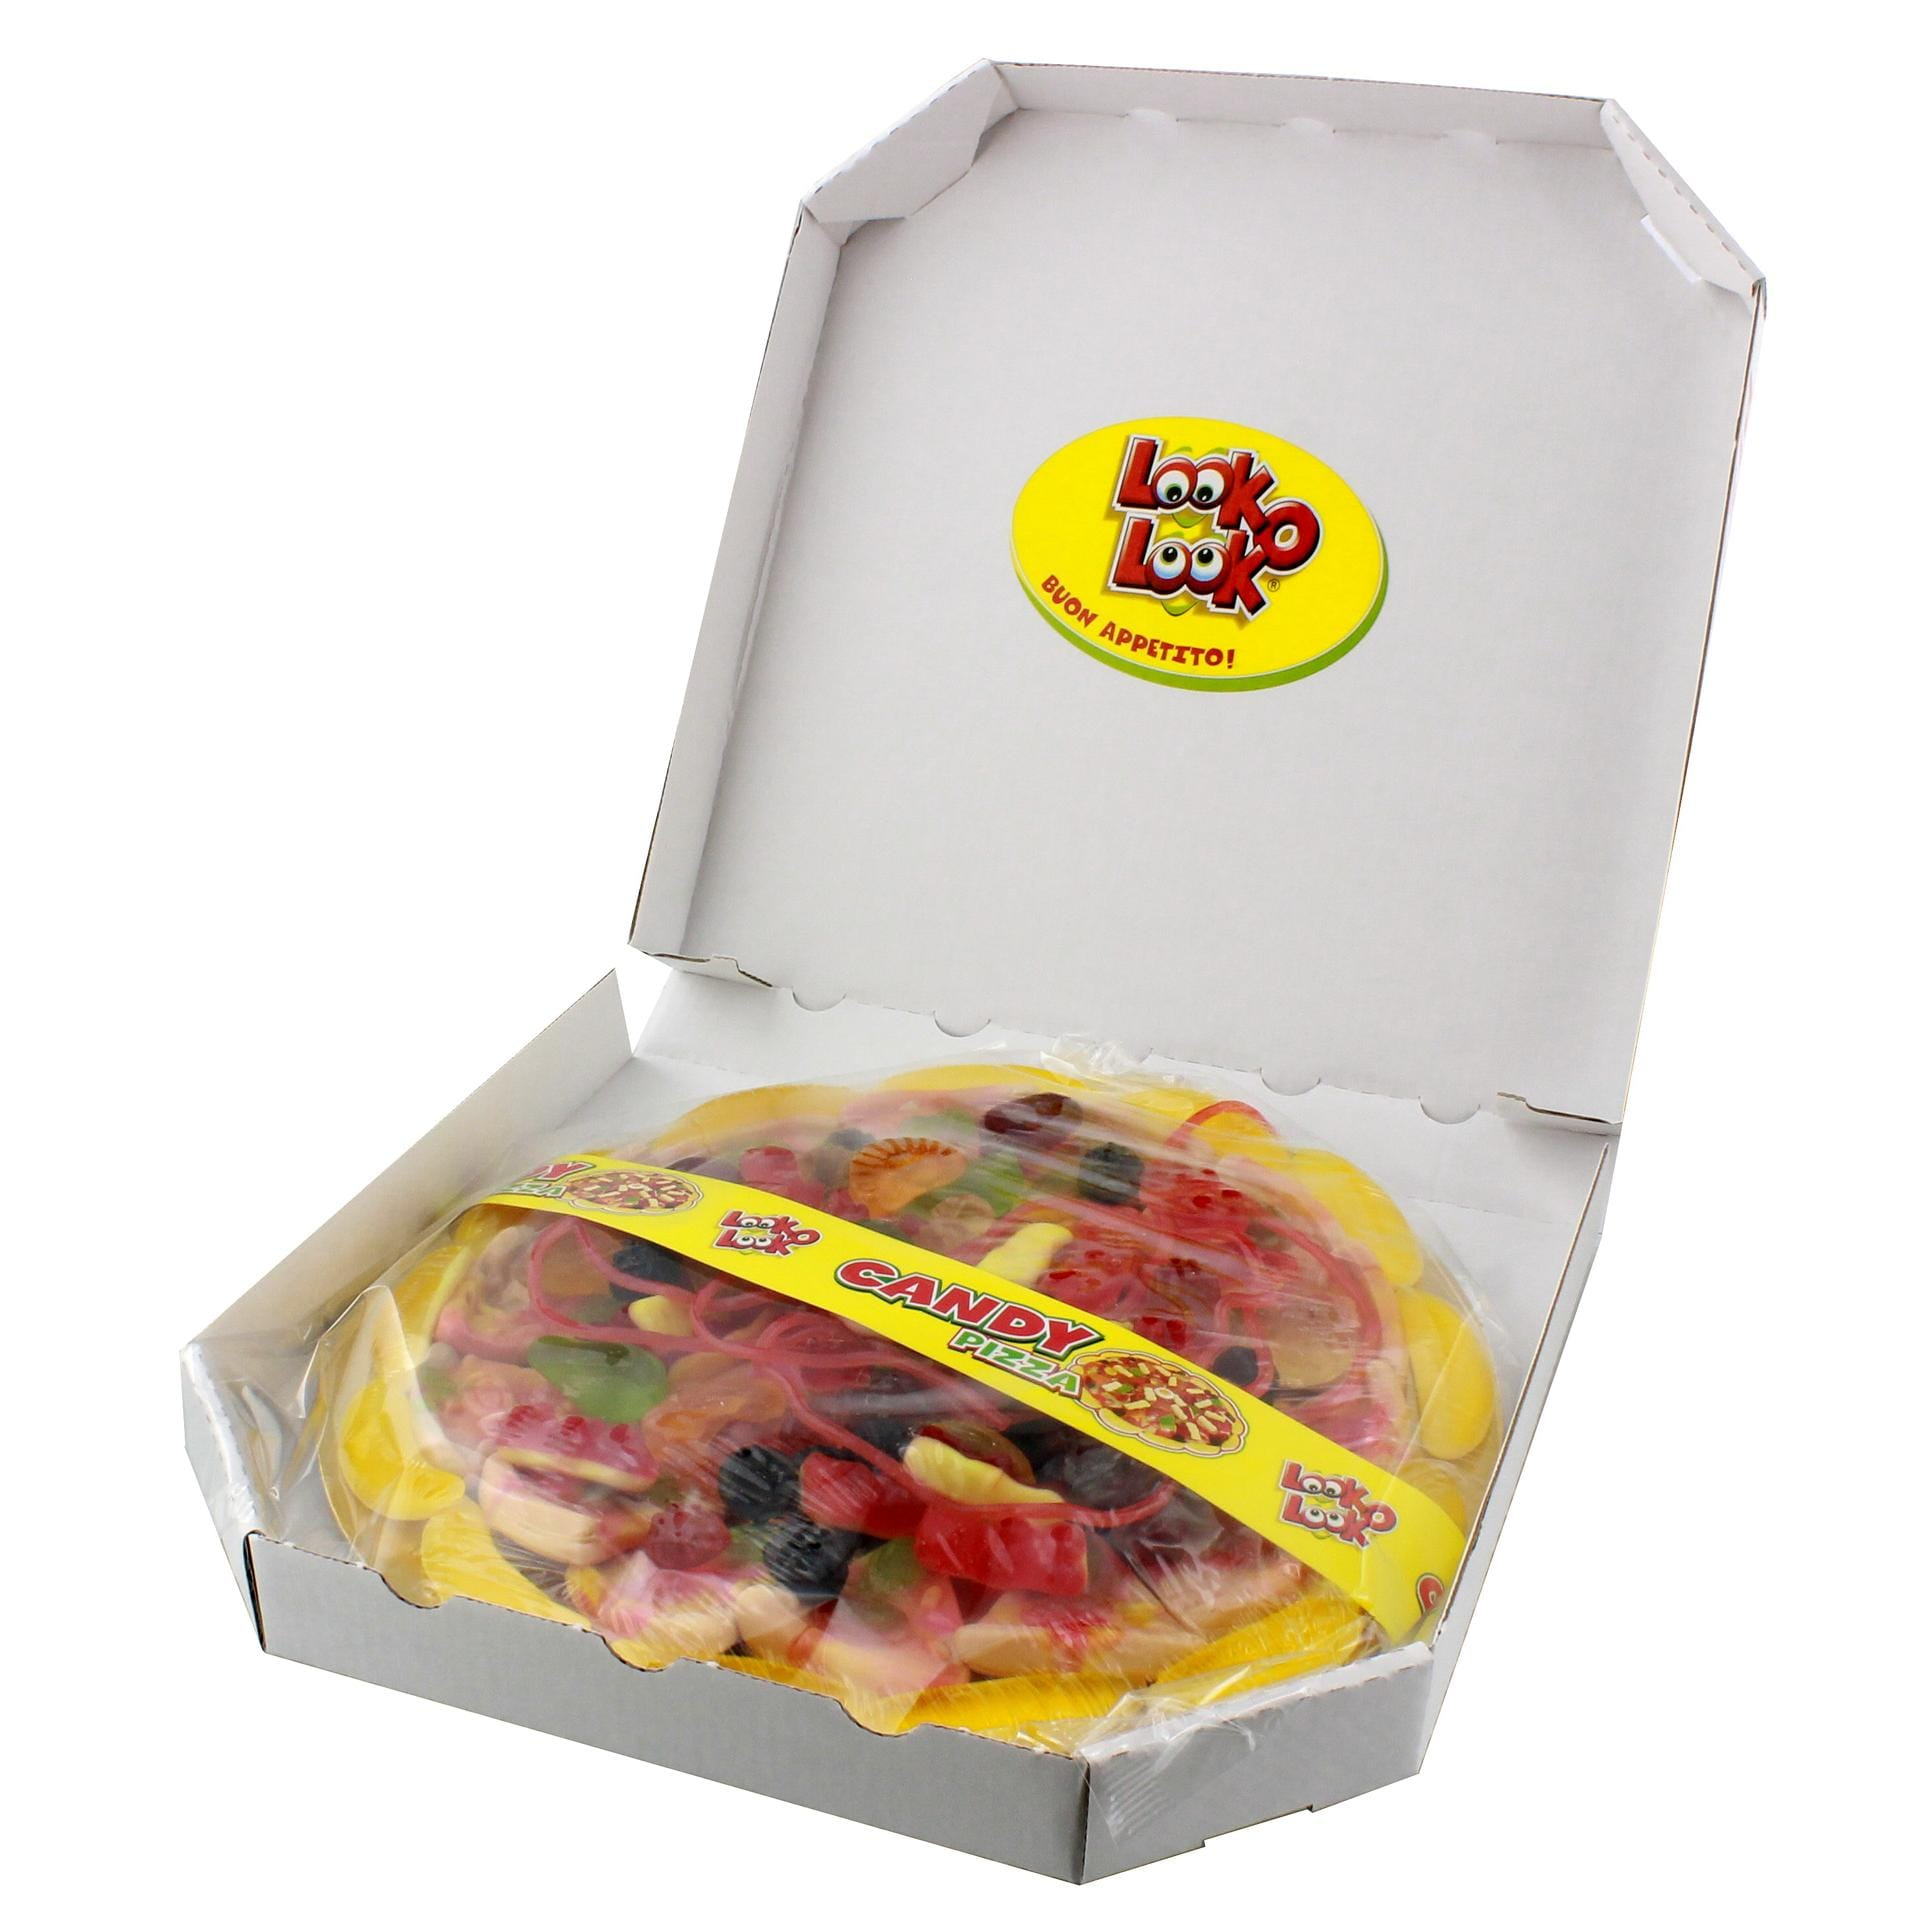 Look-o-Look - Candy Pizza Fruchtgummi - 435g